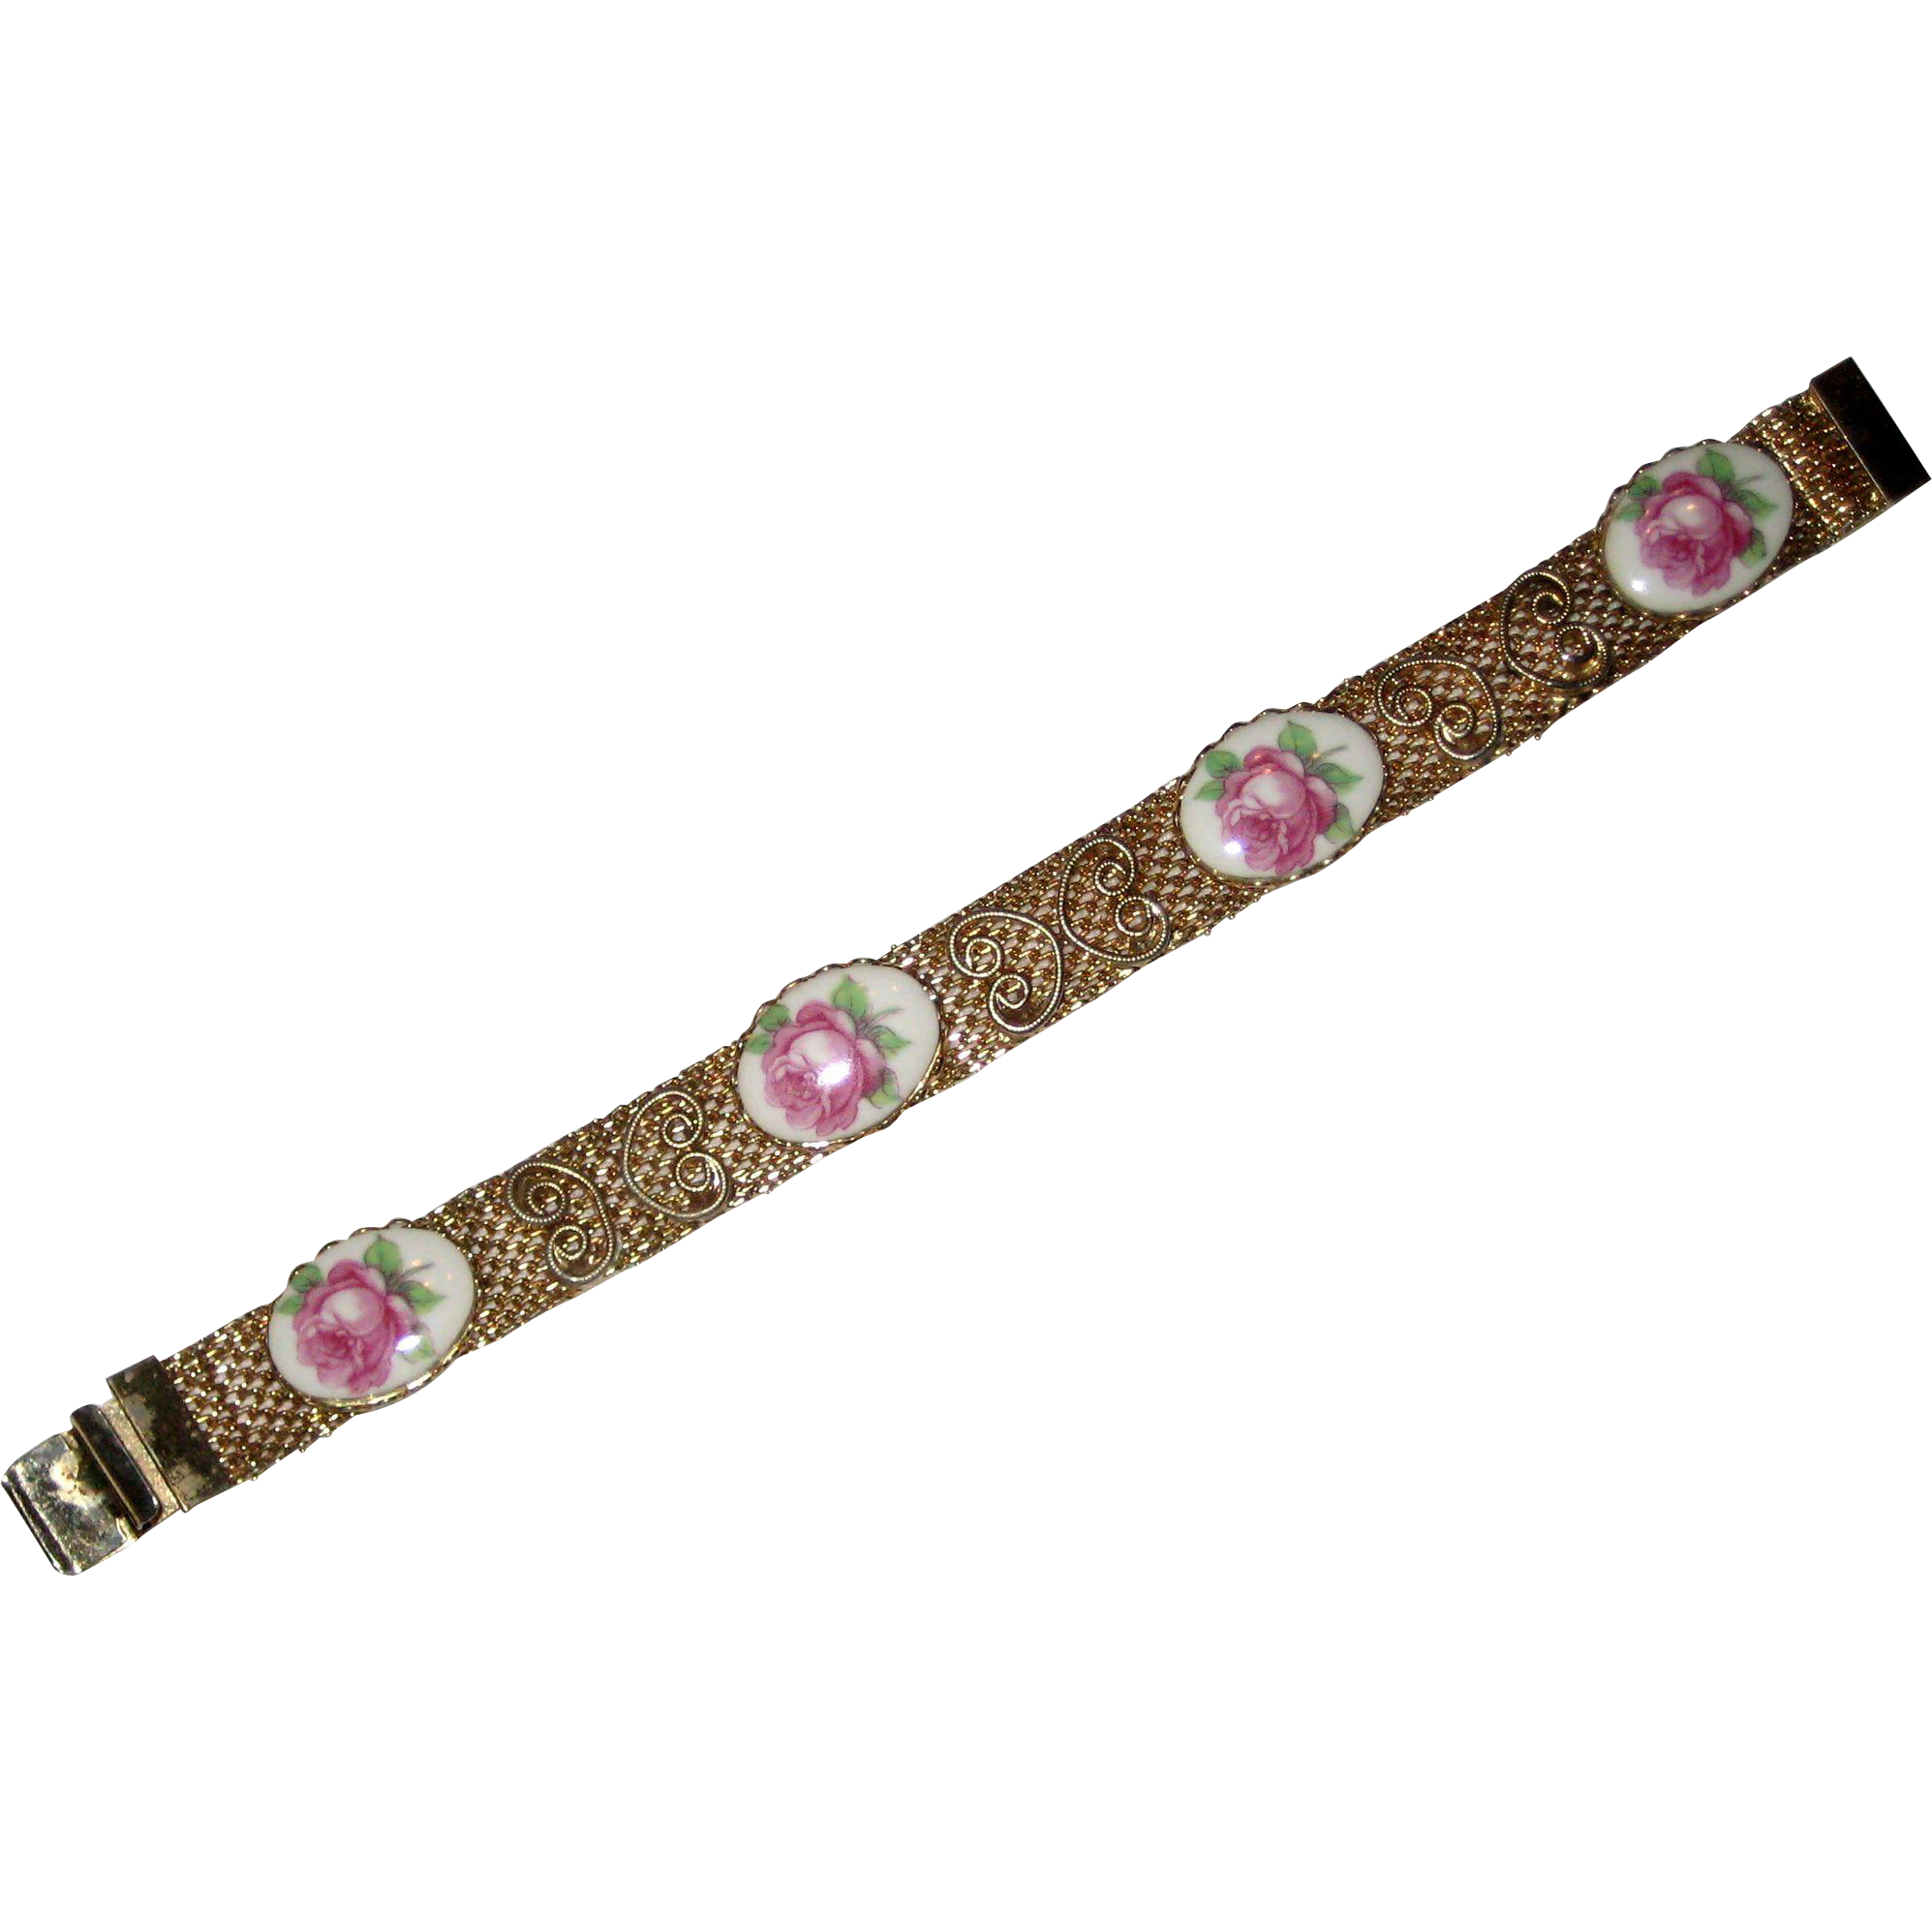 Gold-Tone Mesh Bracelet - Porcelain Plaques with Pink Roses